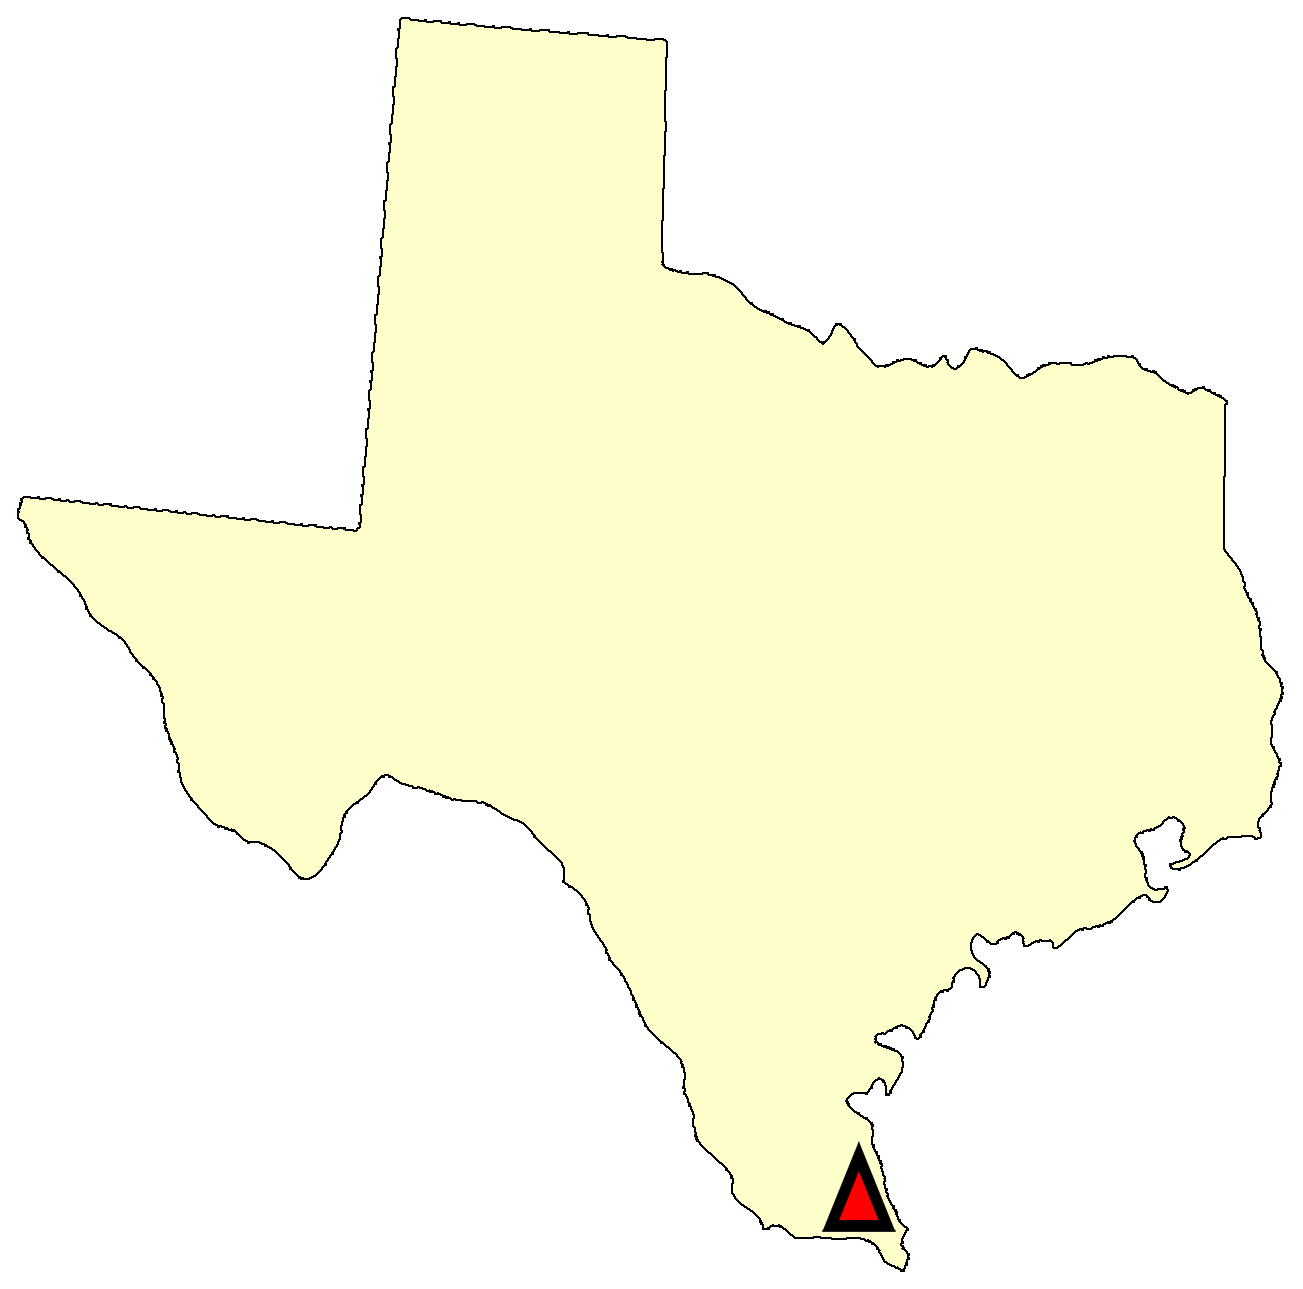 State map location for TX Edinburg